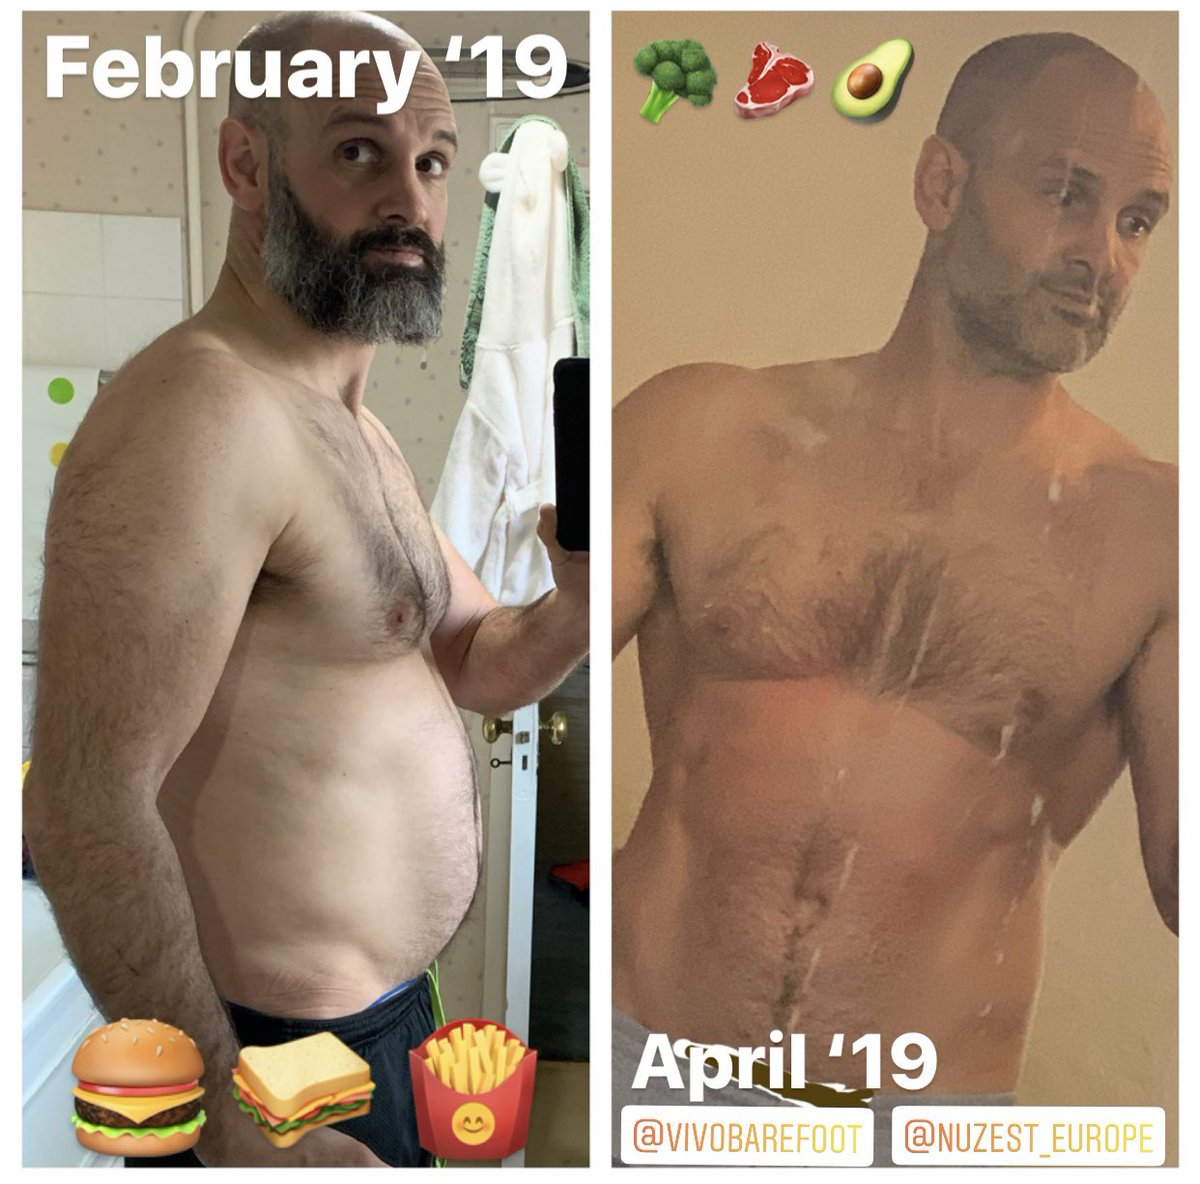 For those on the streets long term poor nutrition is not helping with mental health problems at all. It's taken me two months to get back into half-decent shape - in body &amp; in mind.  #60daysonthestreets @Channel4 @DiscoveryUK @Nuzest_EU @athleatUK @VIVOBAREFOOT @LandRover<br>http://pic.twitter.com/9UAVXTMJdf